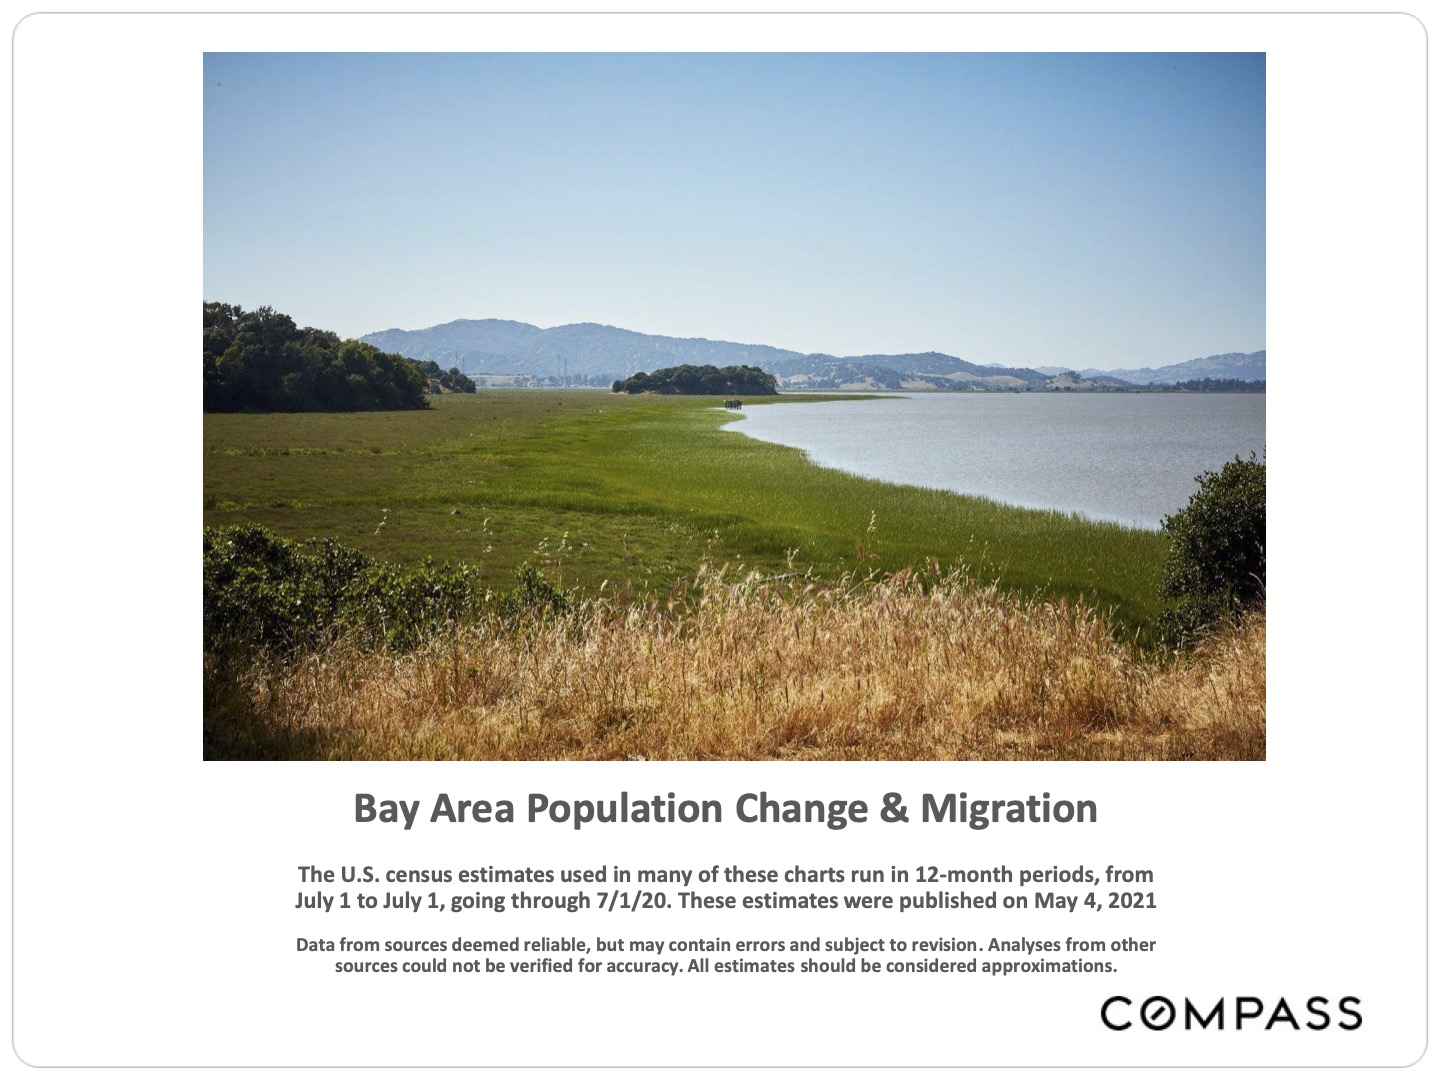 Bay Area Population Change and Migration